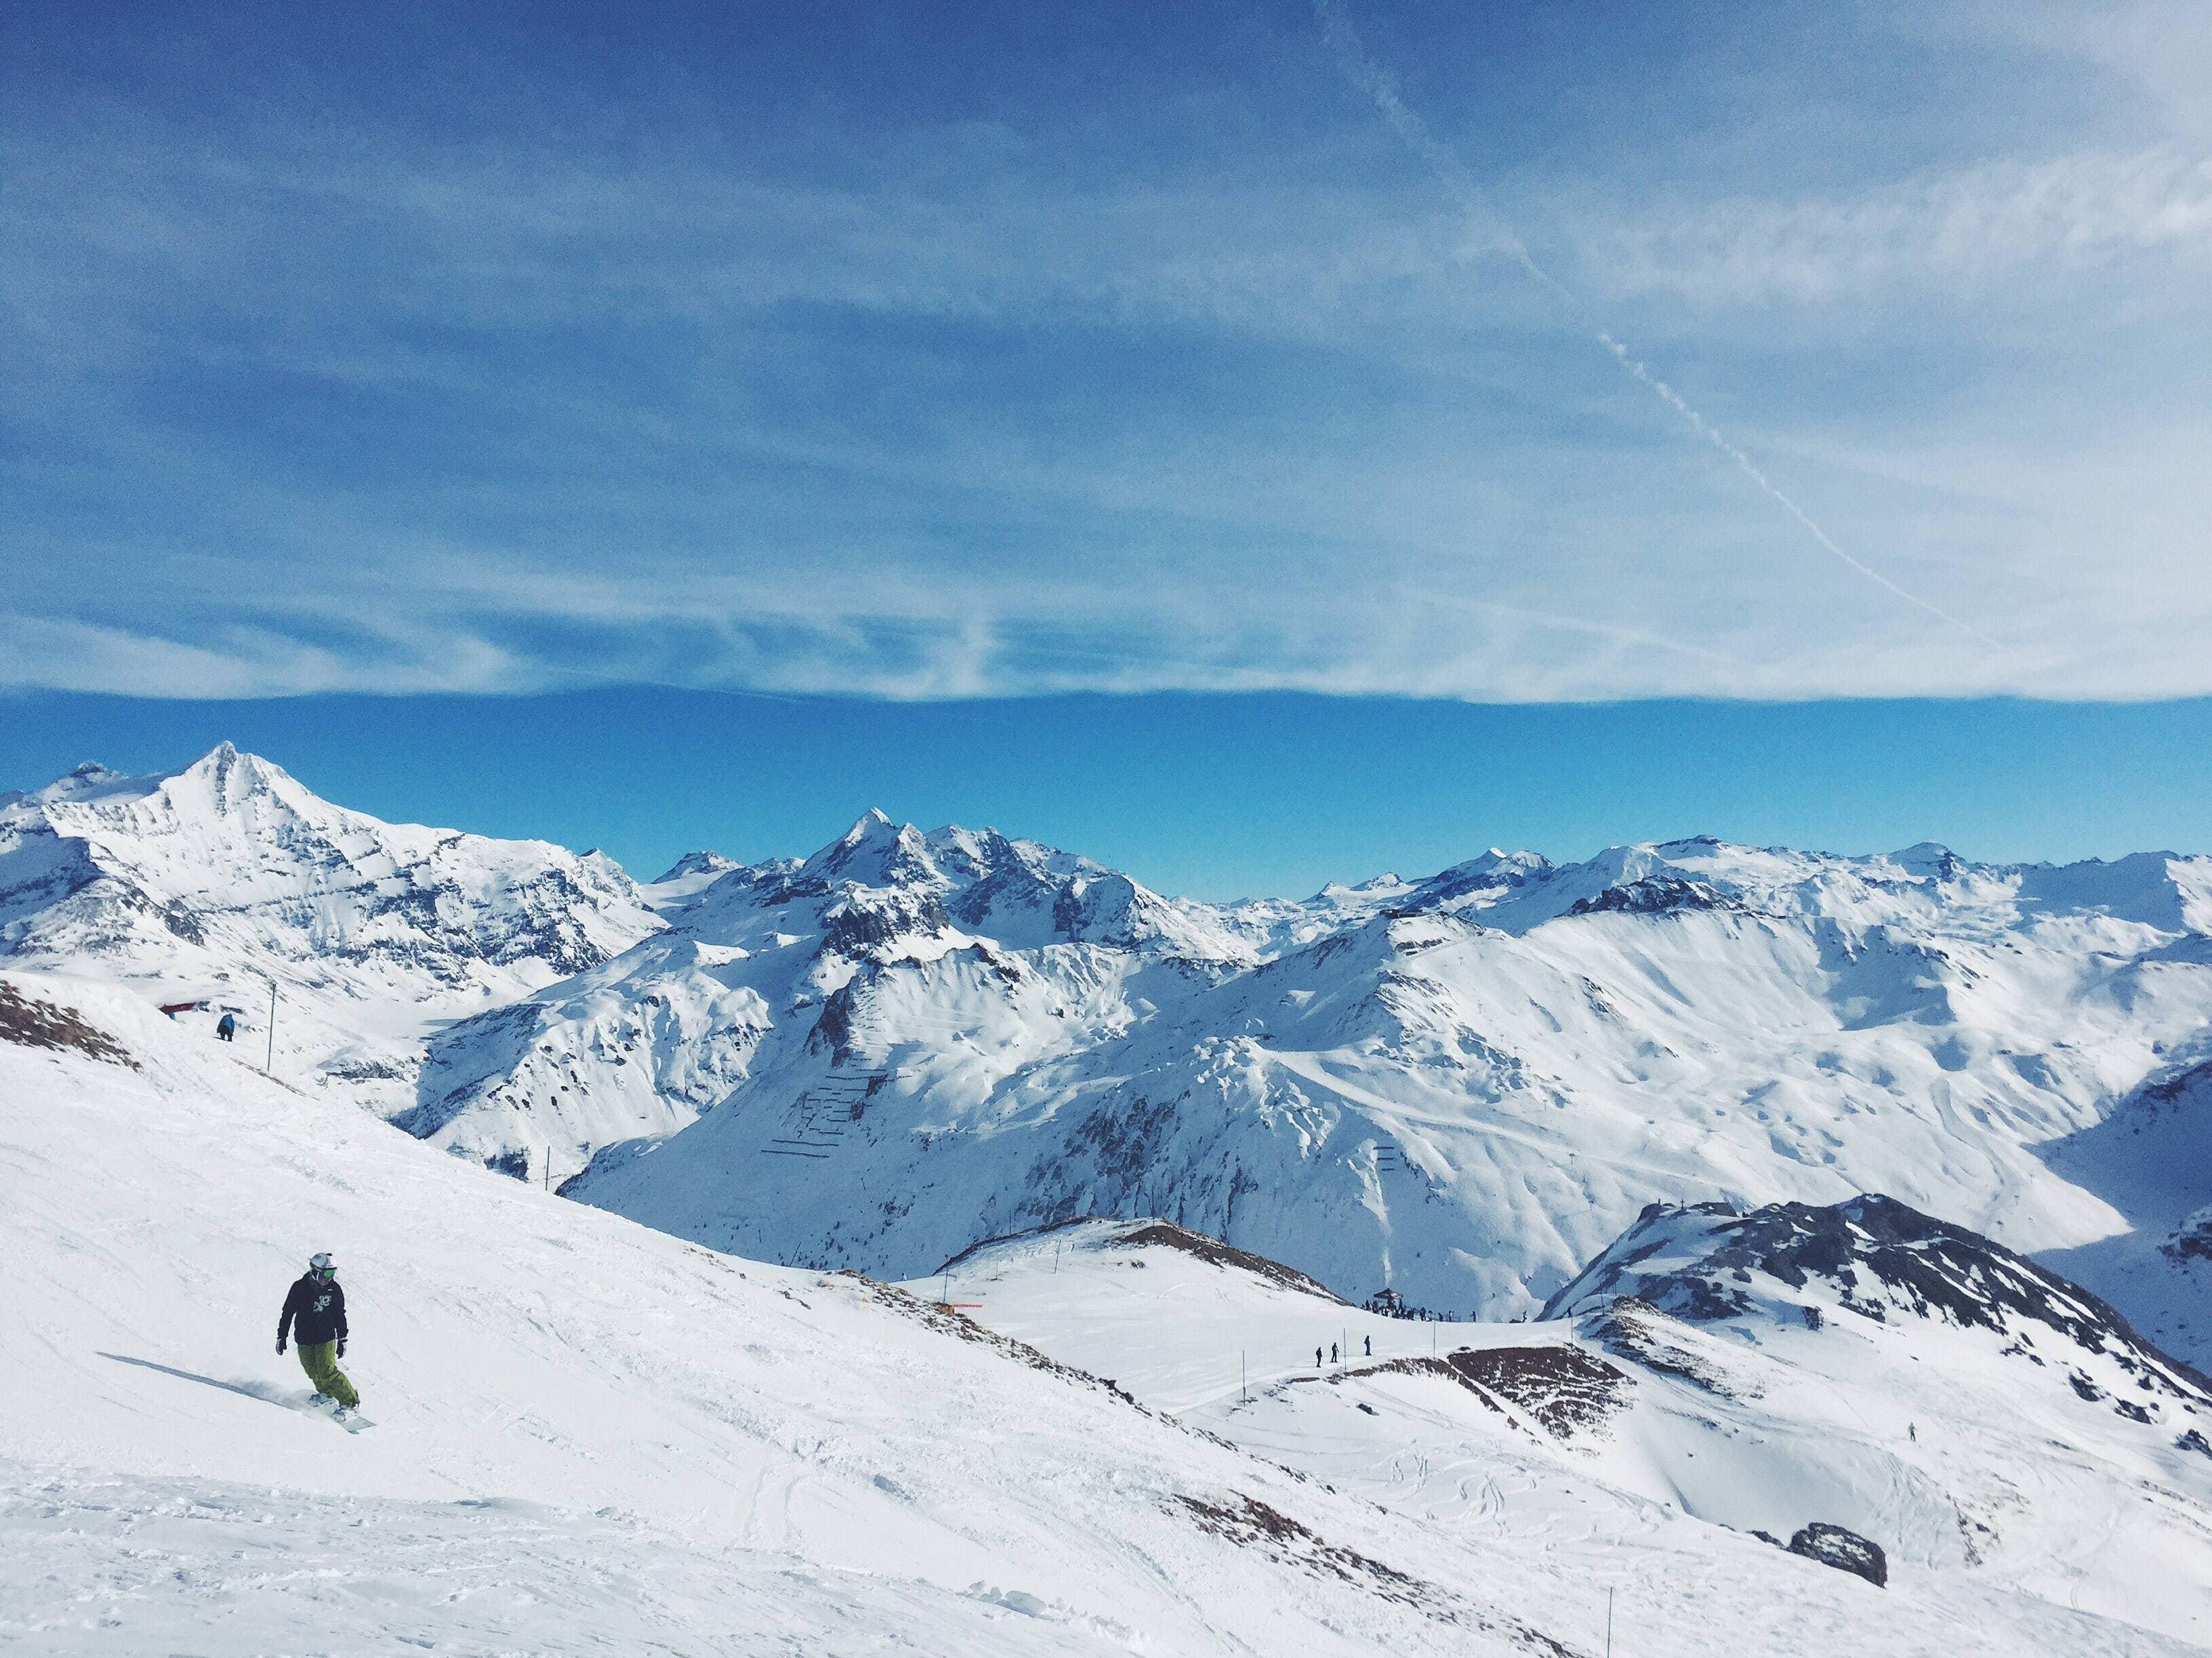 Snowboarder on top of snowcapped mountains high up in the sky